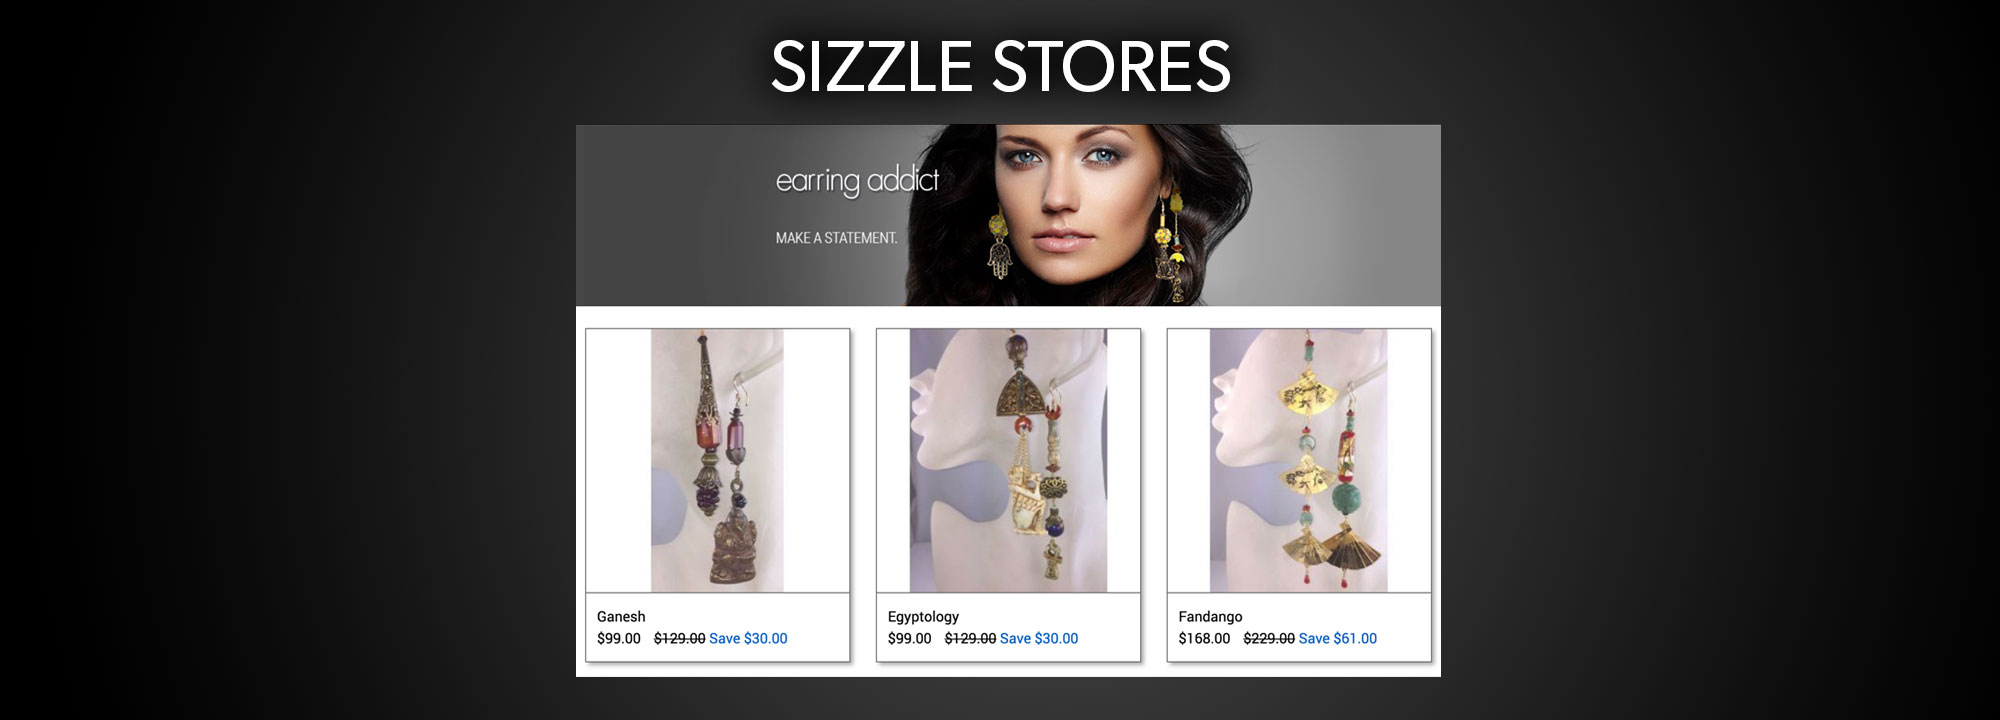 Earring Addict Branded Sizzle Store Front